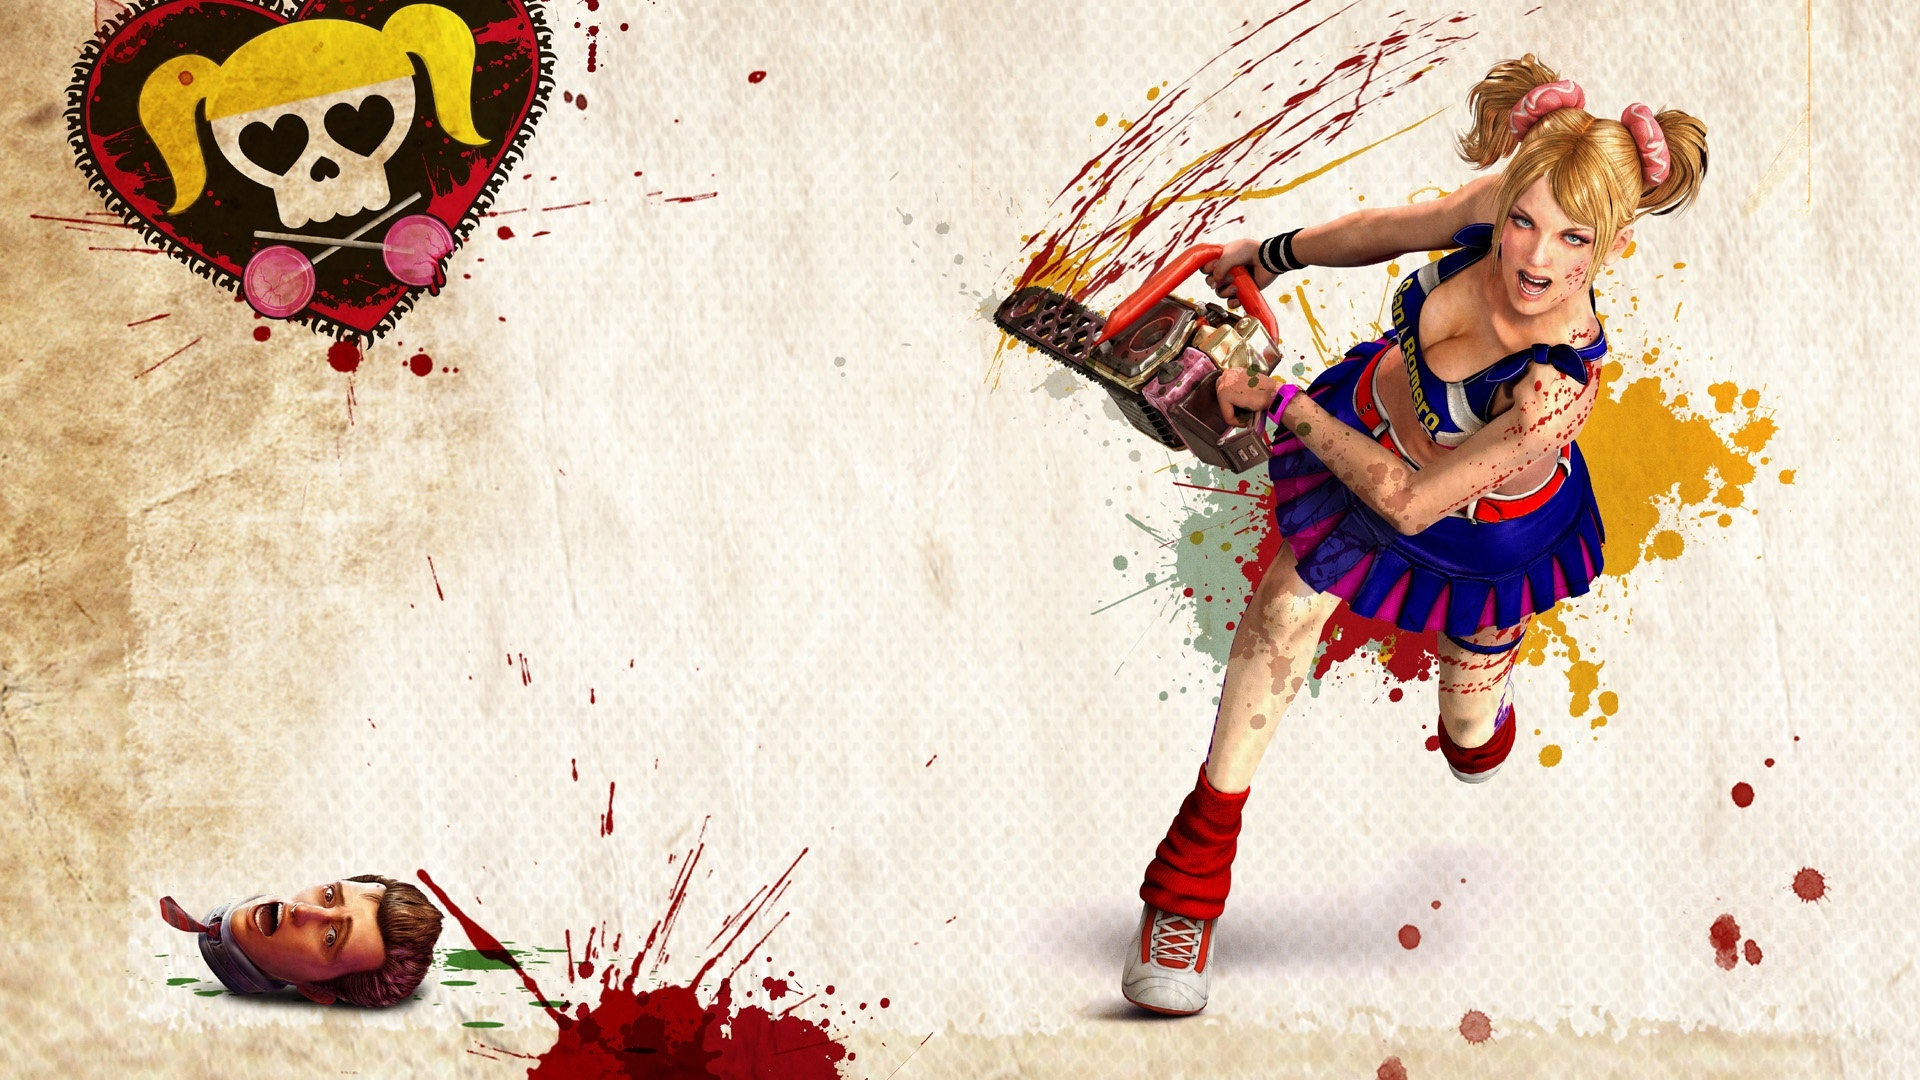 Wallpaper Lollipop Chainsaw Hd 1920x1080 Full Hd 2k Picture Image